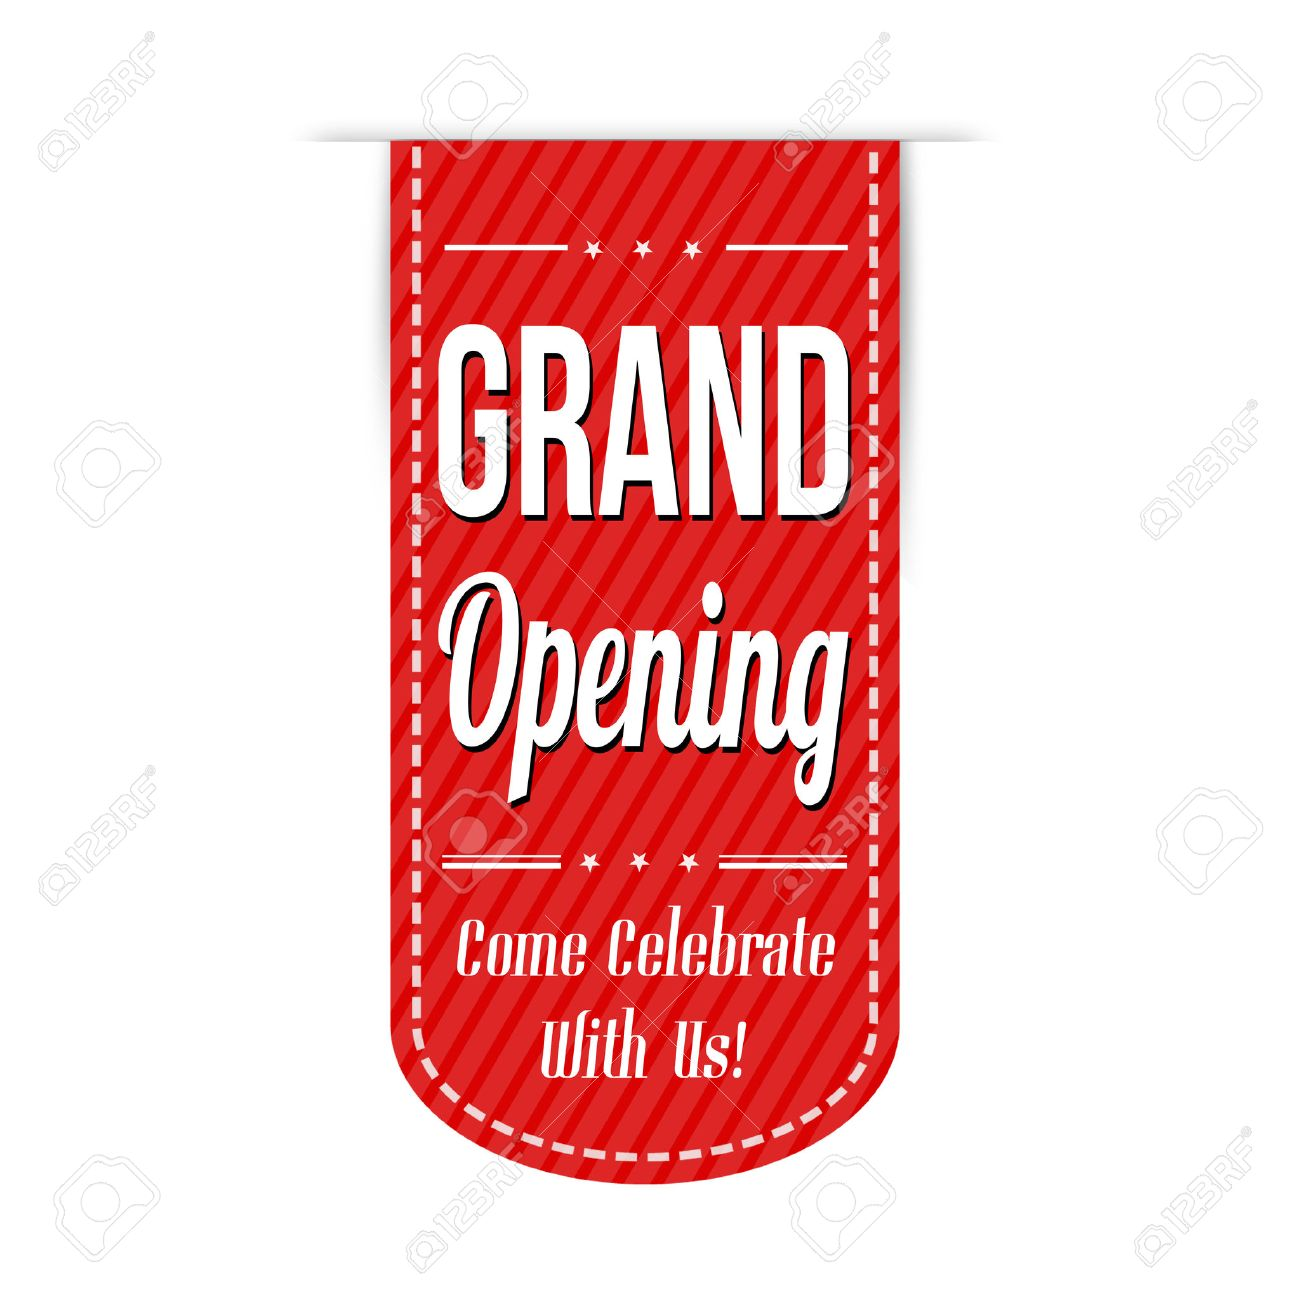 Grand Opening Banner Design Over A White Background Vector Illustration Royalty Free Cliparts Vectors And Stock Illustration Image 32436884